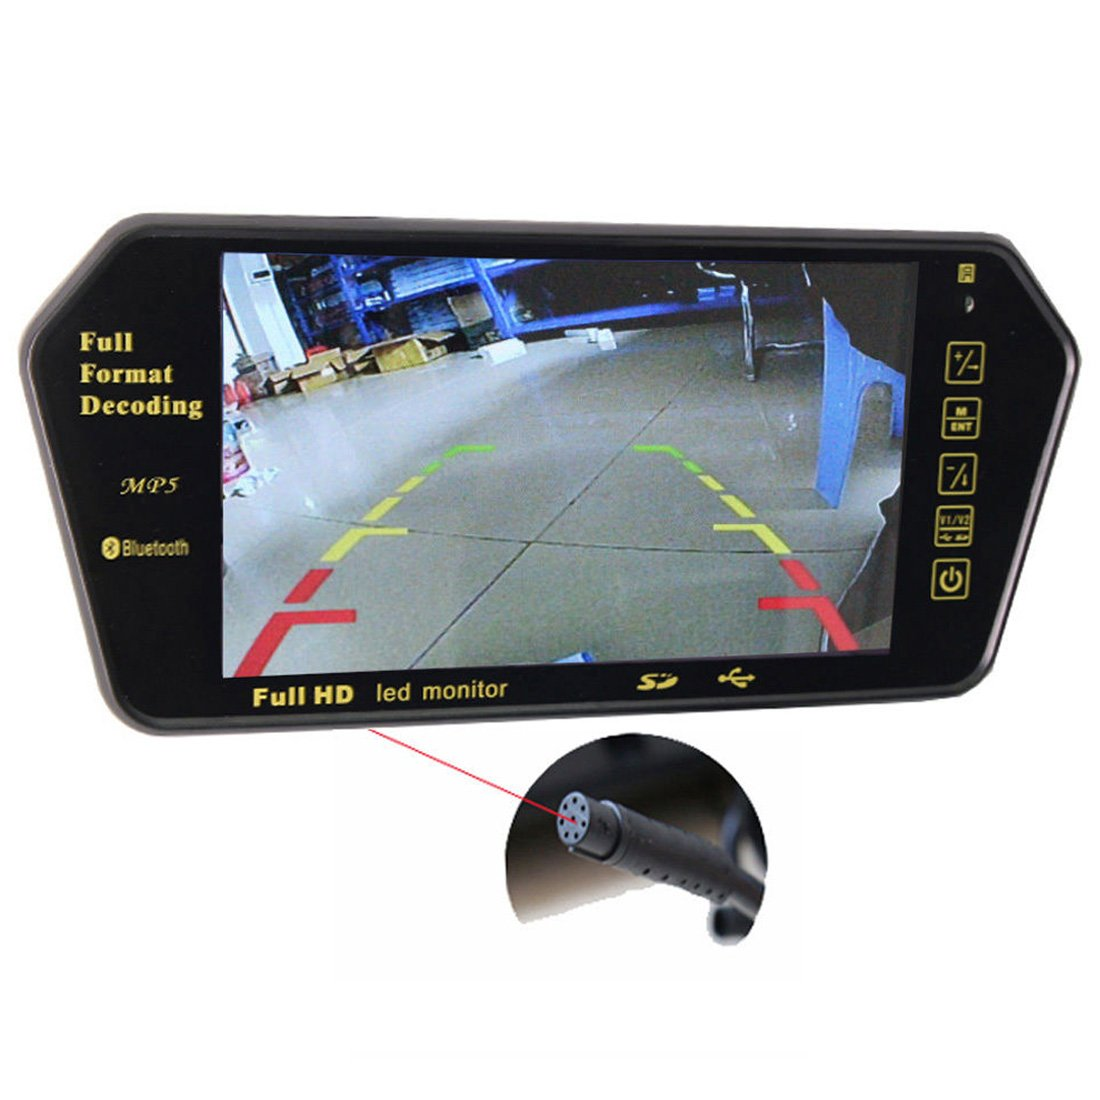 PONPY 7 Inch Color TFT LCD Screen Full HD 800x480 FM USB SD MP5 Bluetooth Car Rear View In-mirror Video Monitor